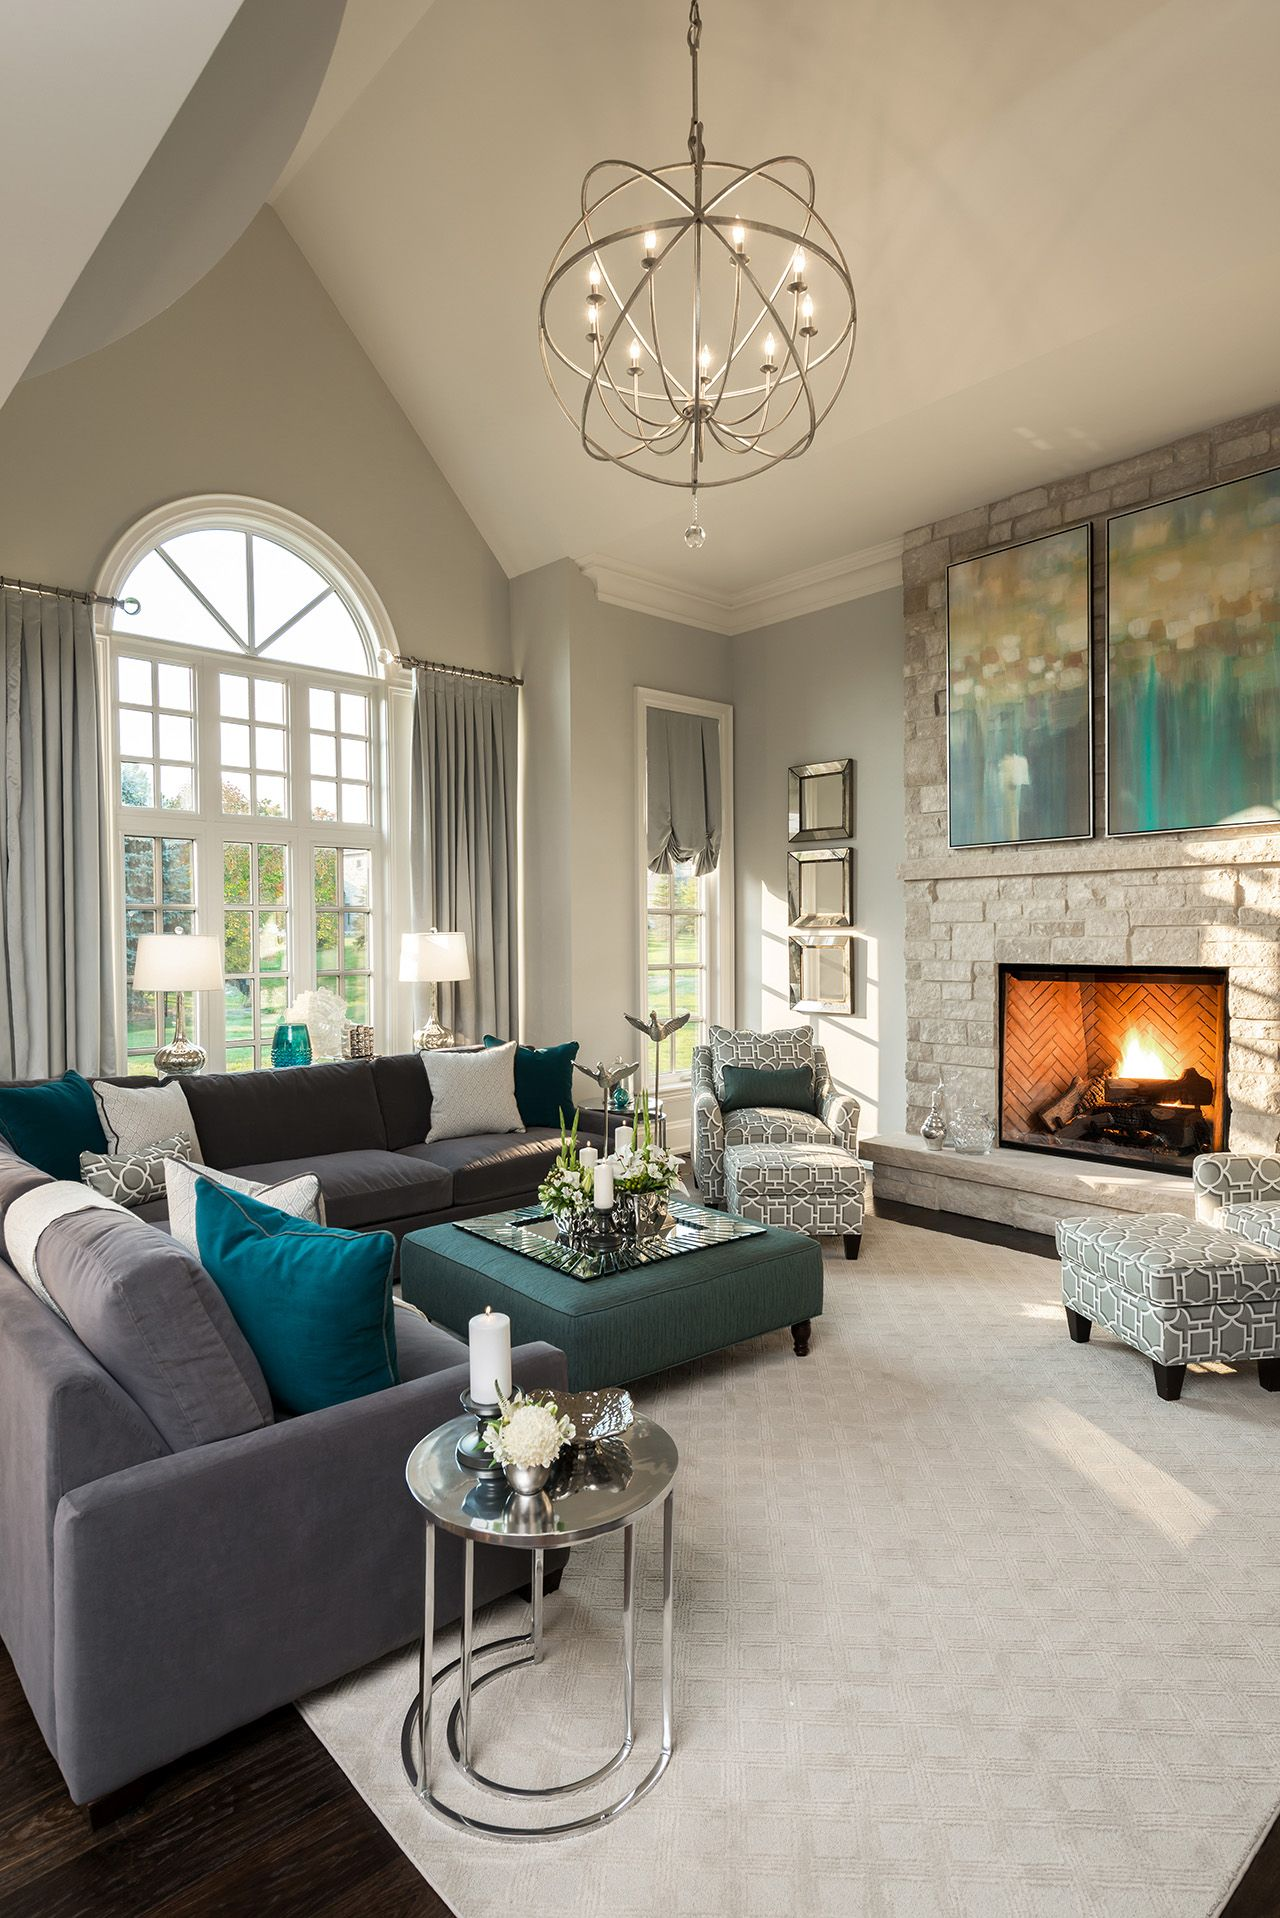 Paint Colors For High Ceiling Living Room Benjamin Moore Colors For Your Living Room Decor Furniture Ideas